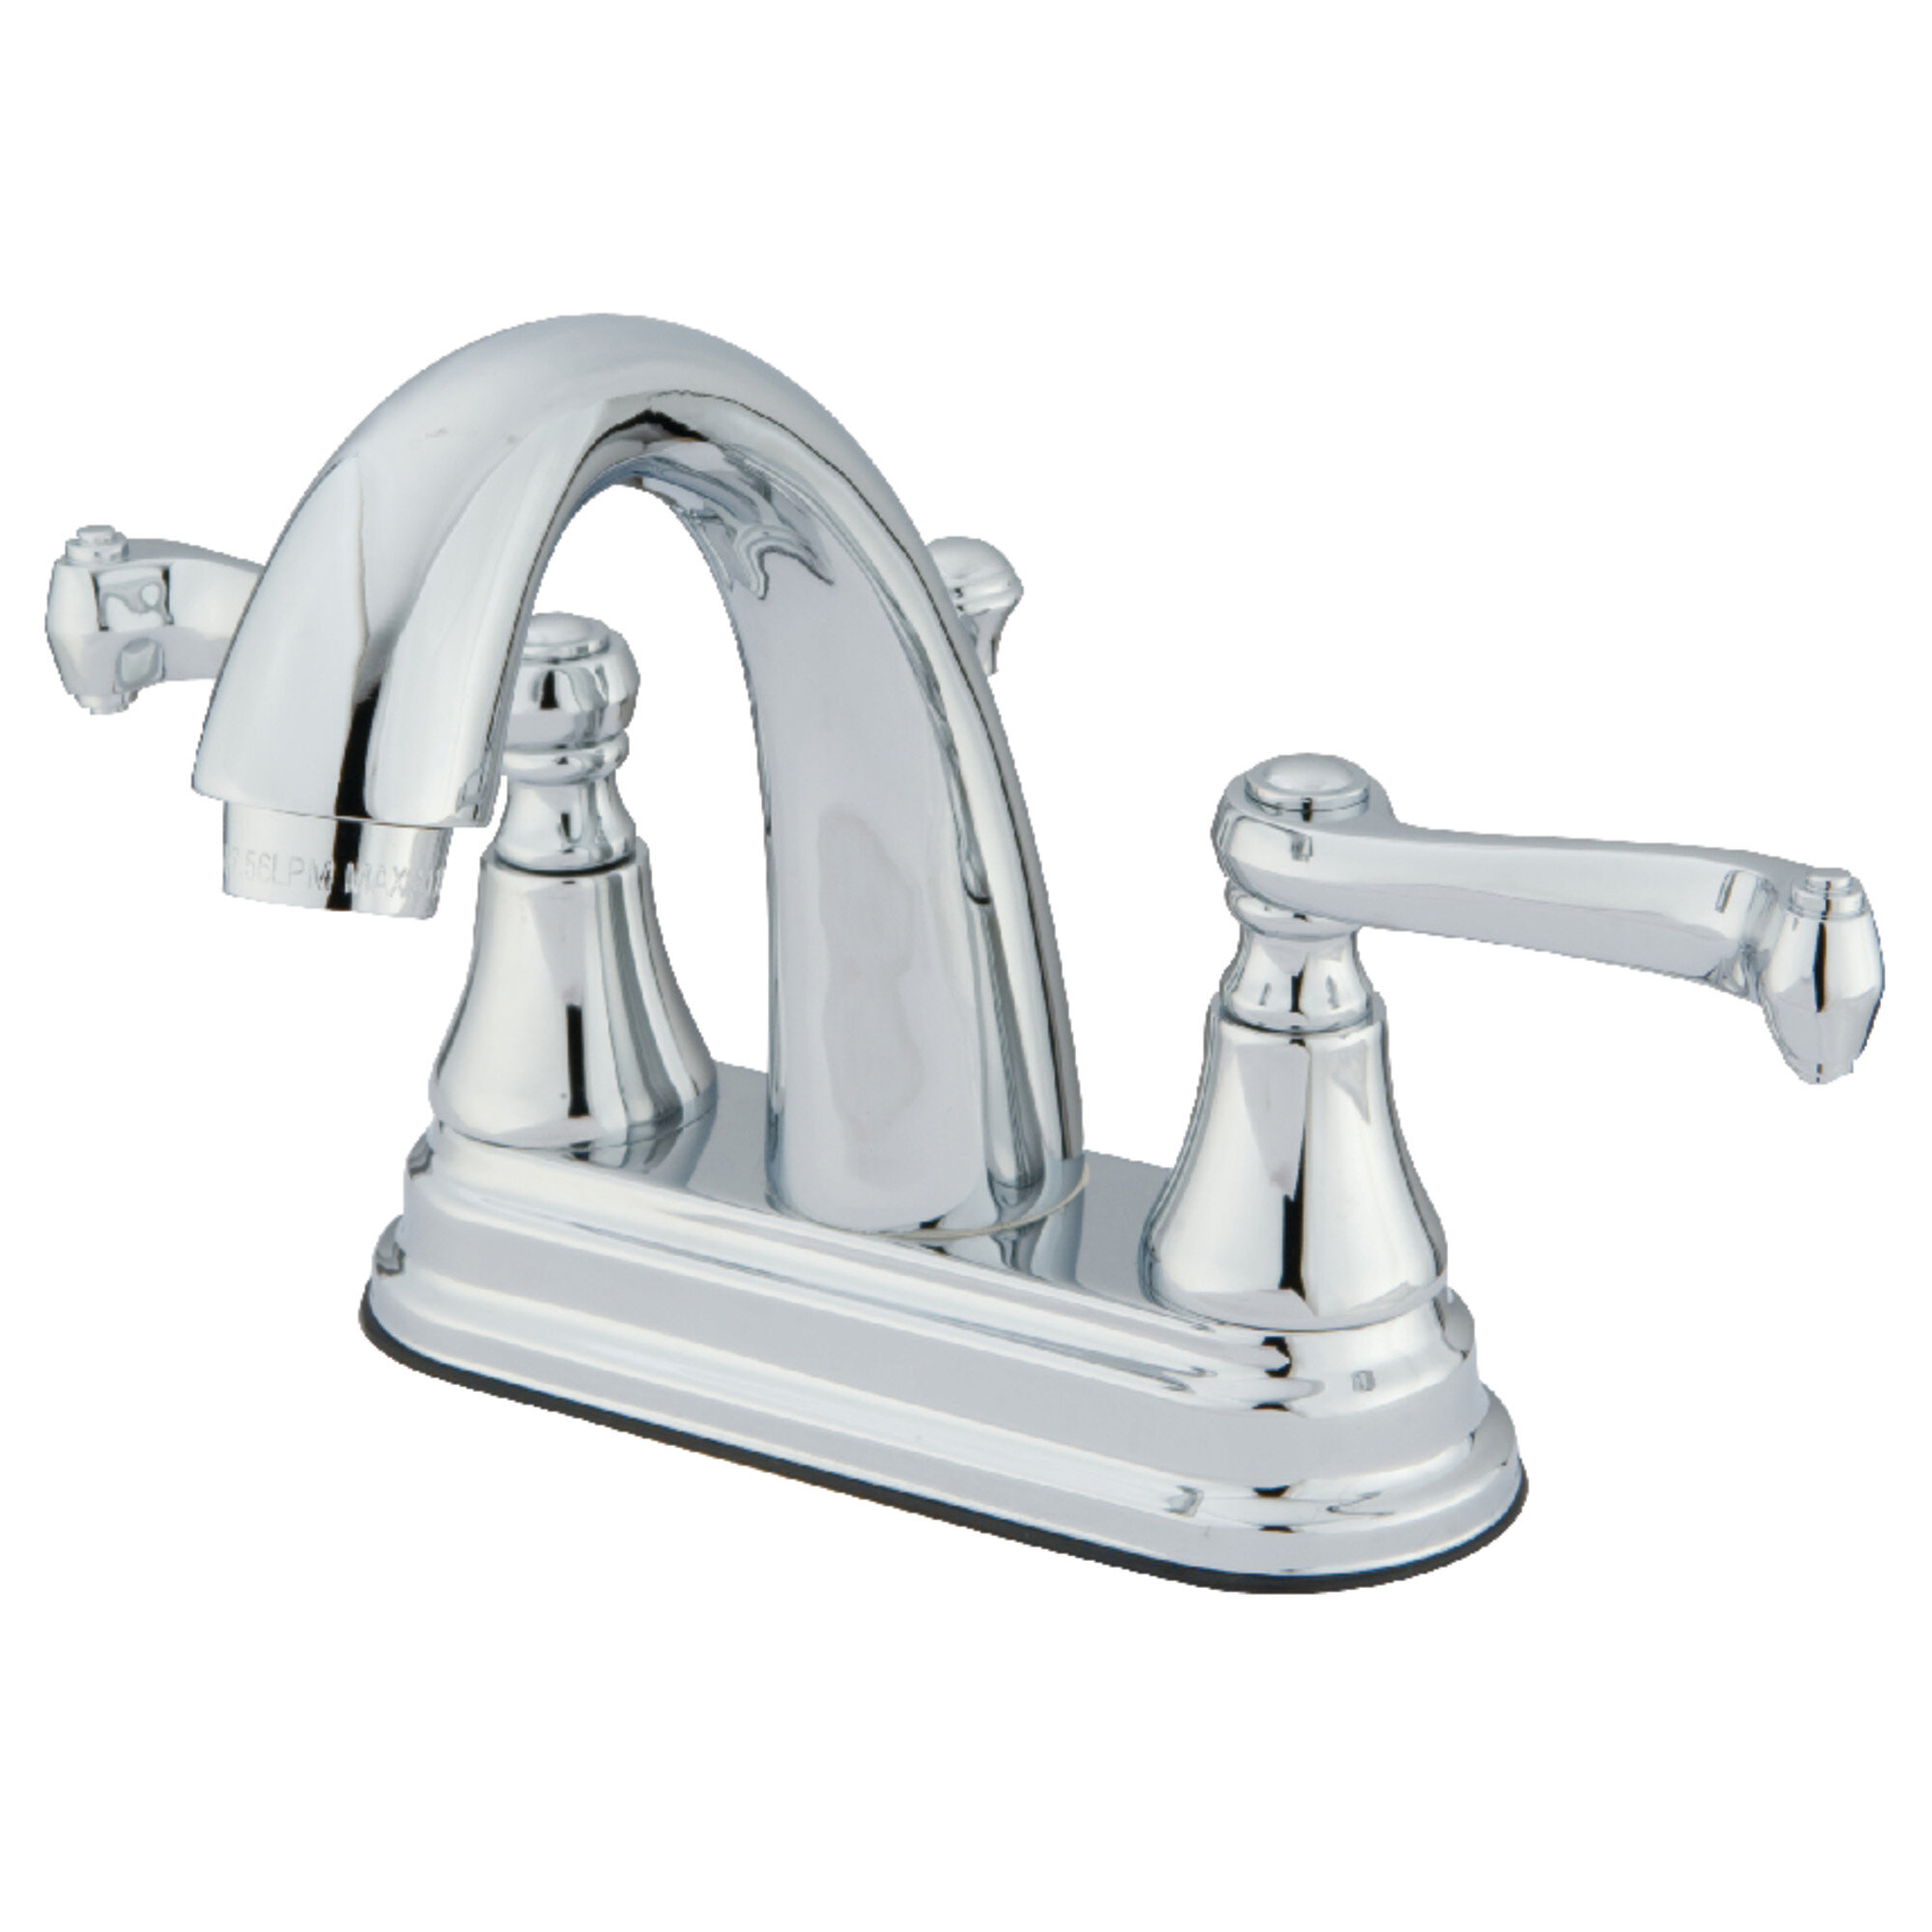 Chrome Elements Of Design Bathroom Sink Faucets You Ll Love In 2021 Wayfair